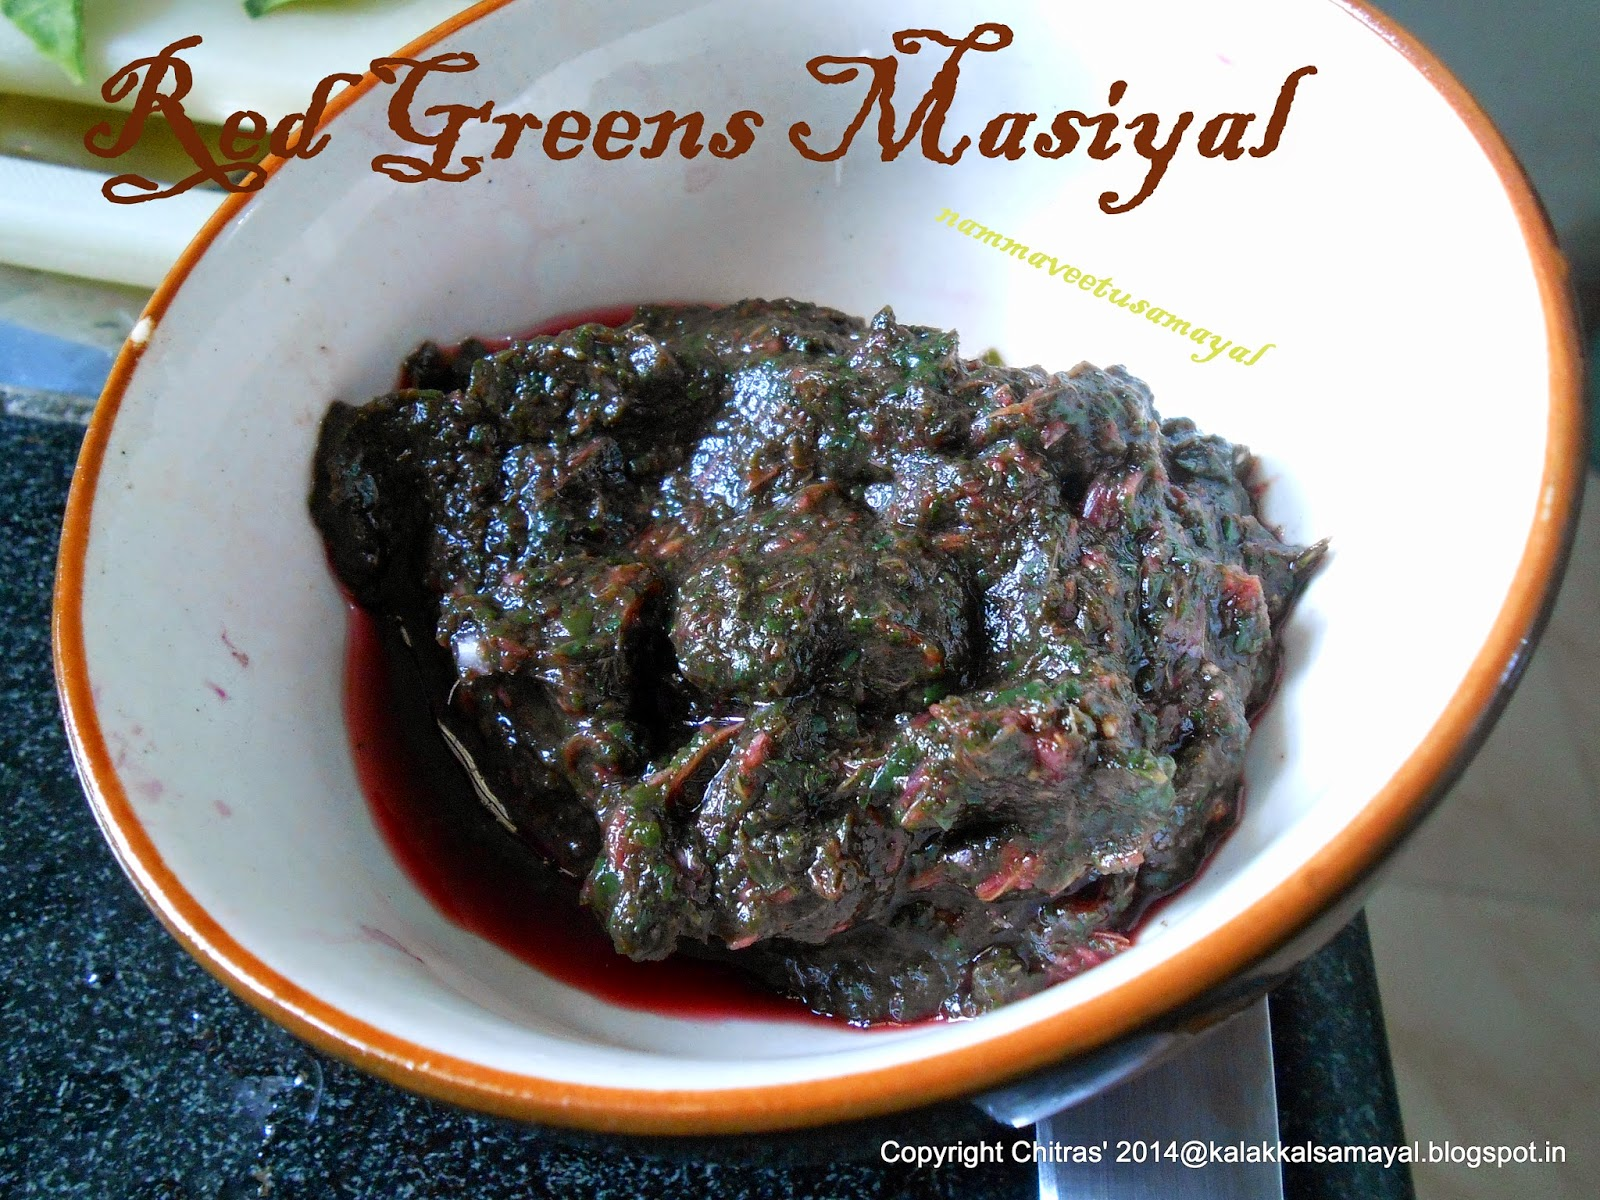 Red Greens masiyal